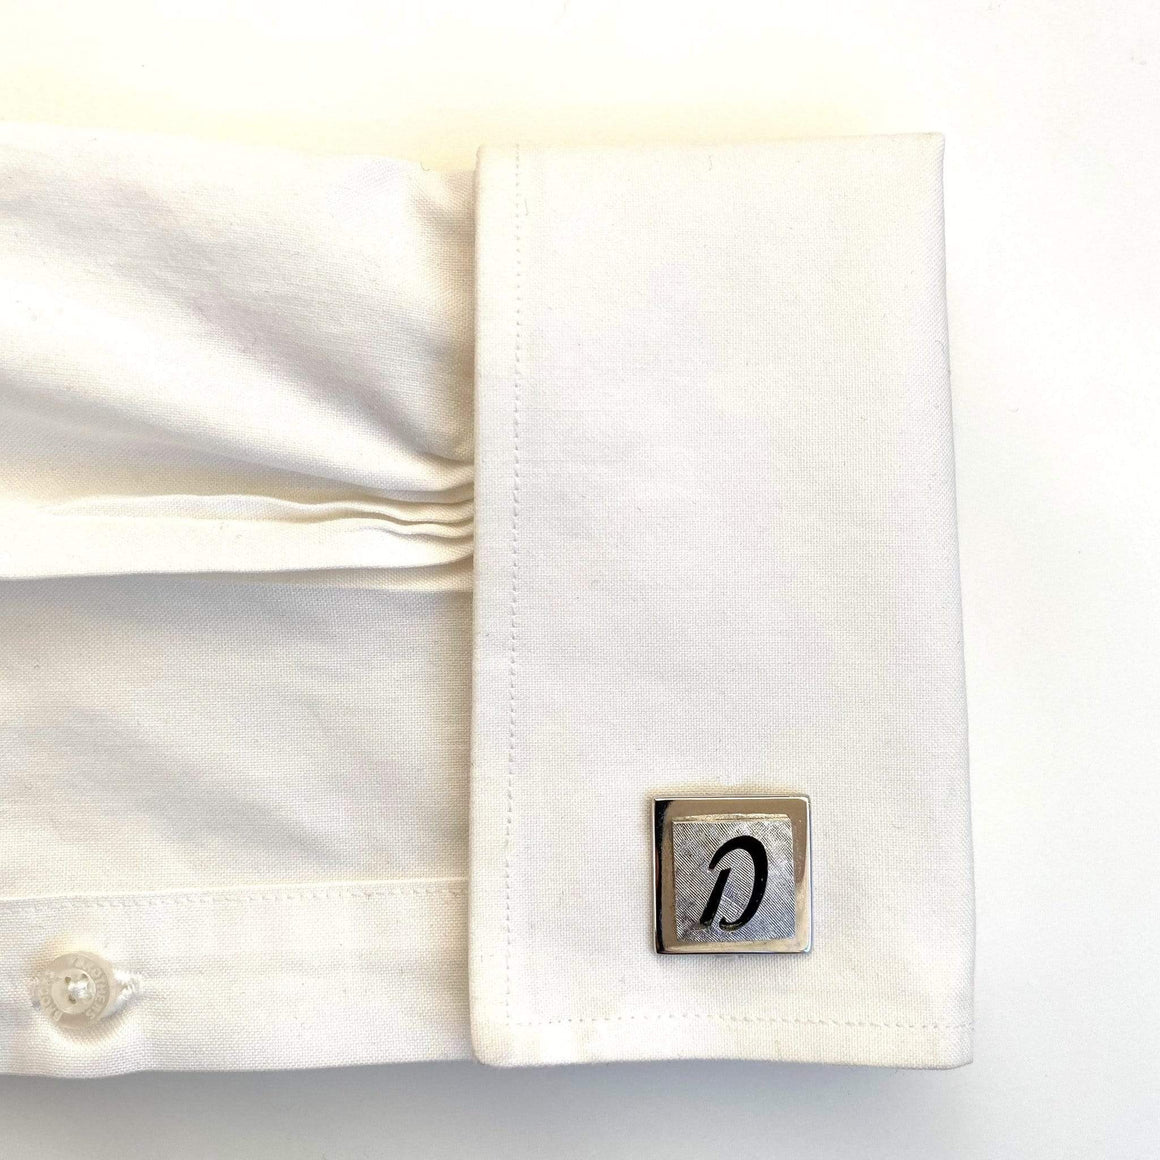 kristina iulo | a private vintage collection Men's Clothing & Accessories Vintage 1970s Swank Monogram 'D' Silver Square Cufflinks